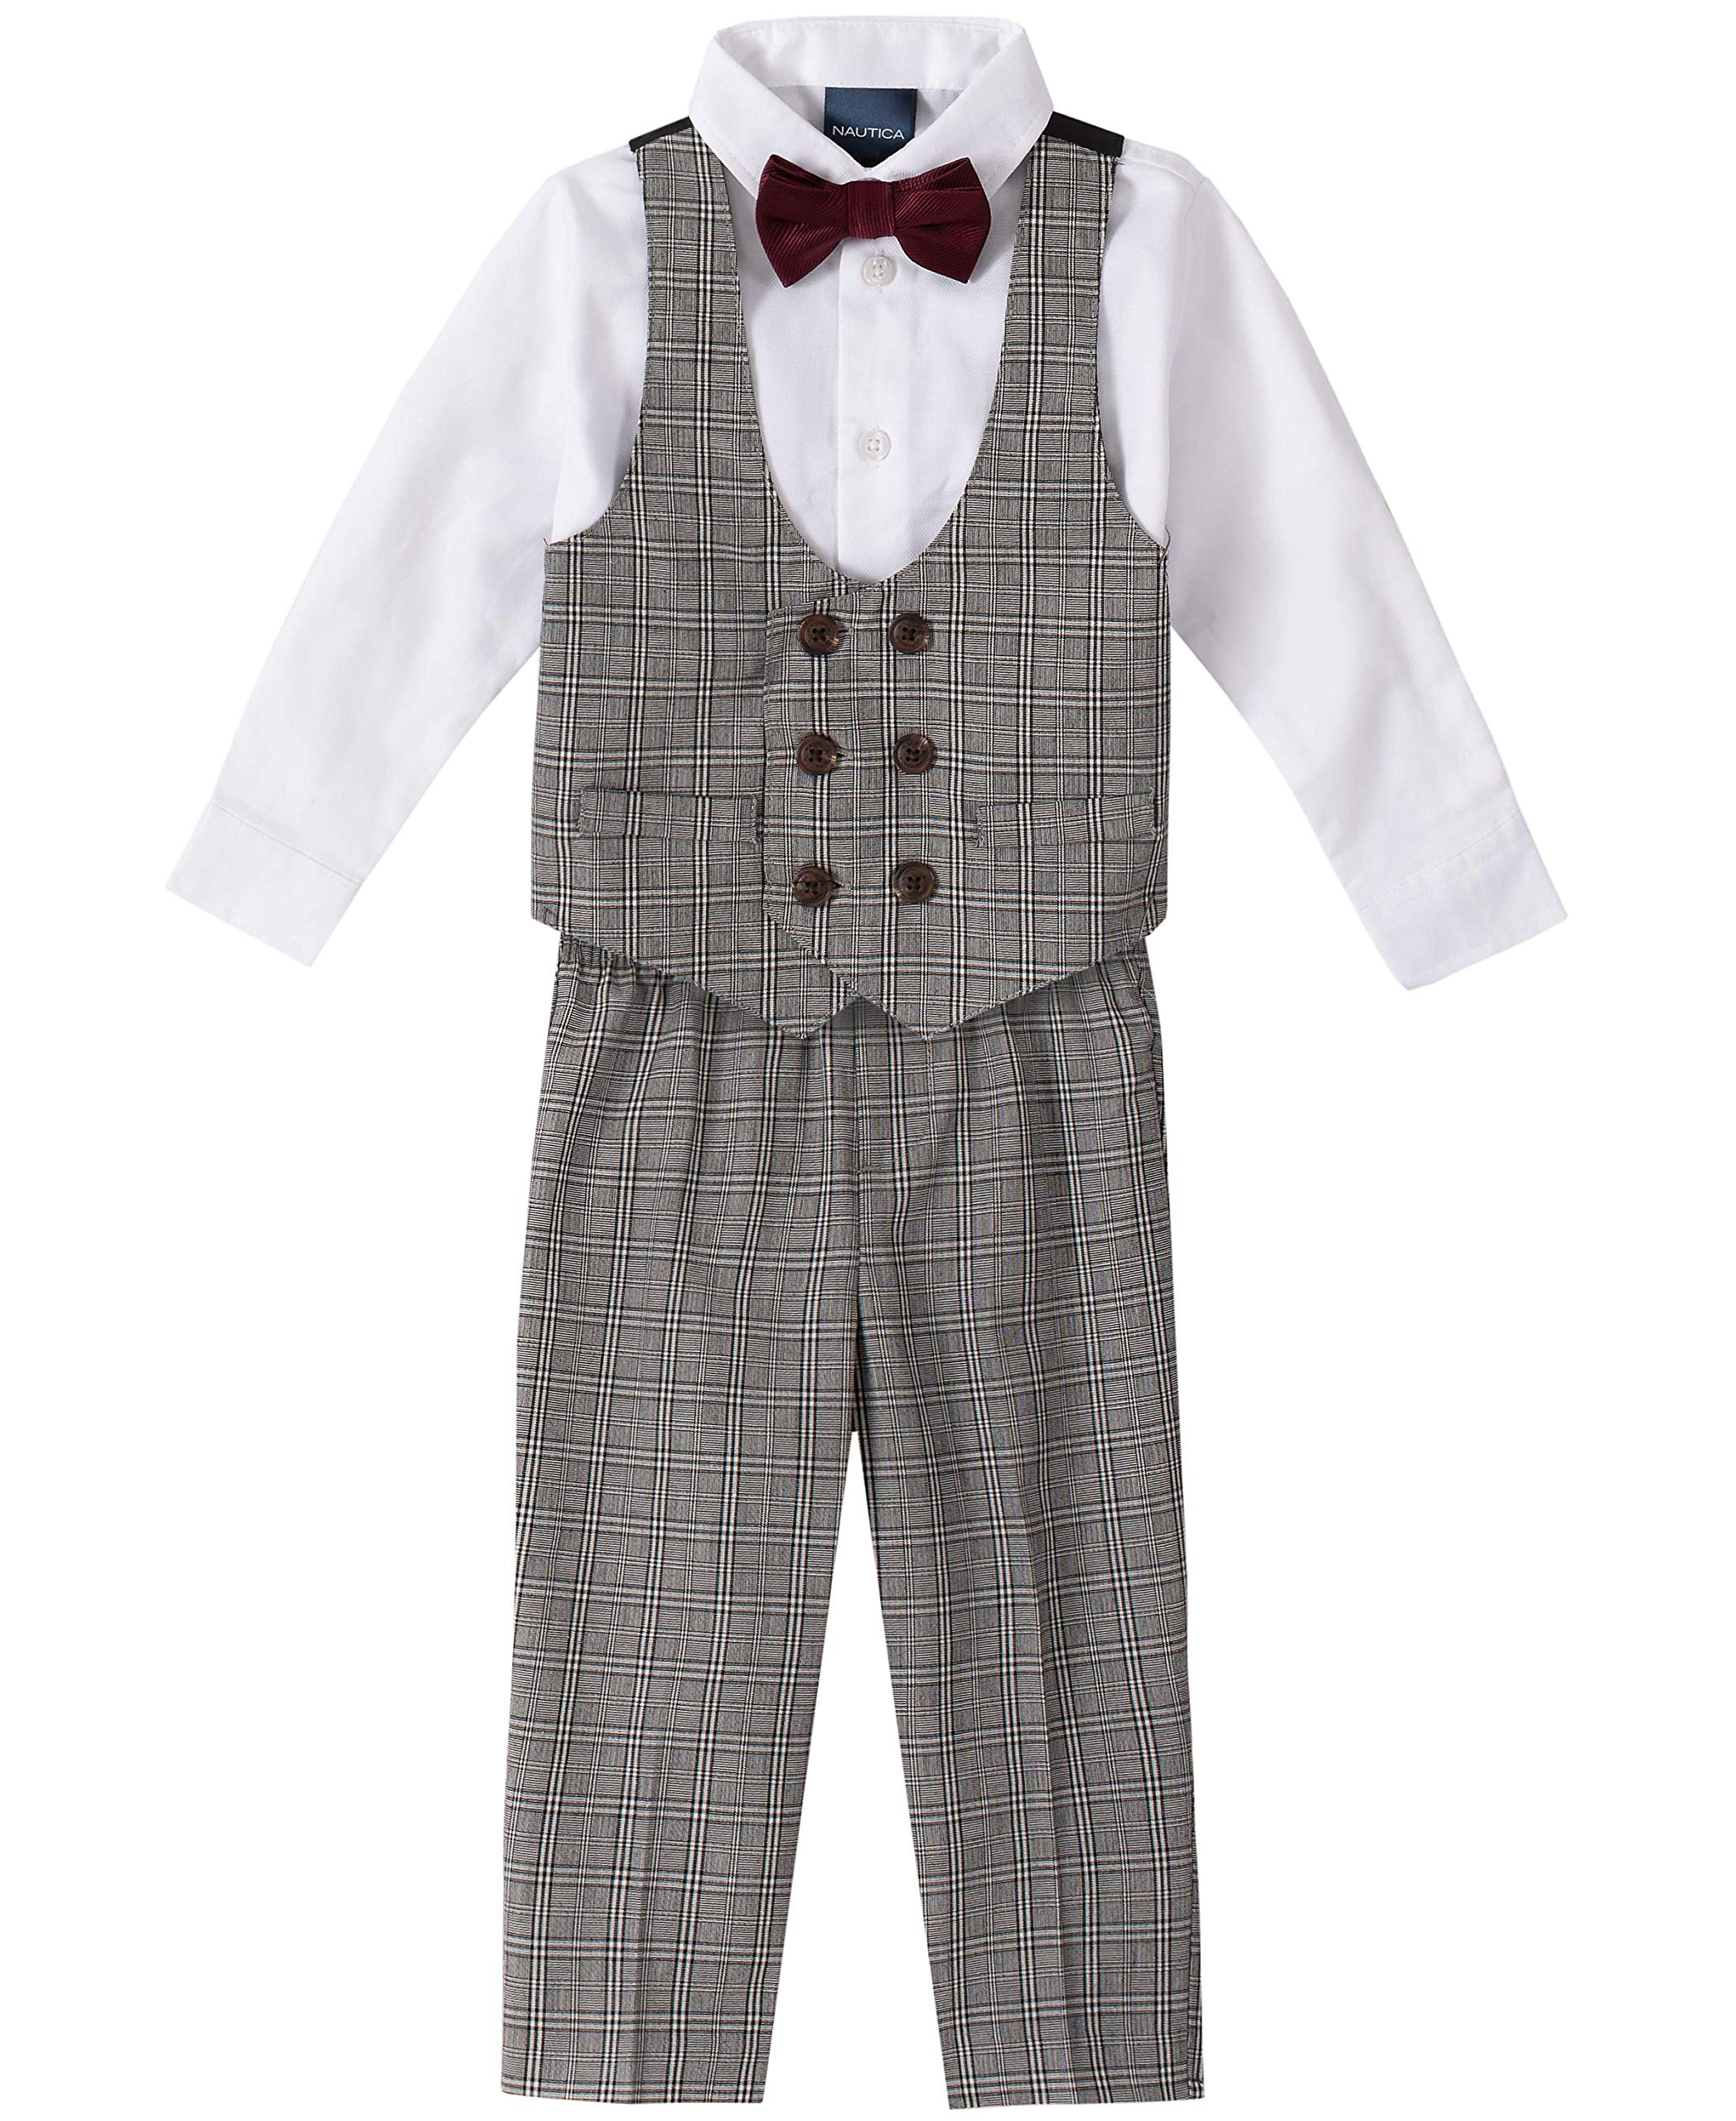 Nautica Baby Boys 4-Piece Set with Dress Shirts, Vests, Pants, and Bow Ties, Plaid Grey, 24 Months by Nautica